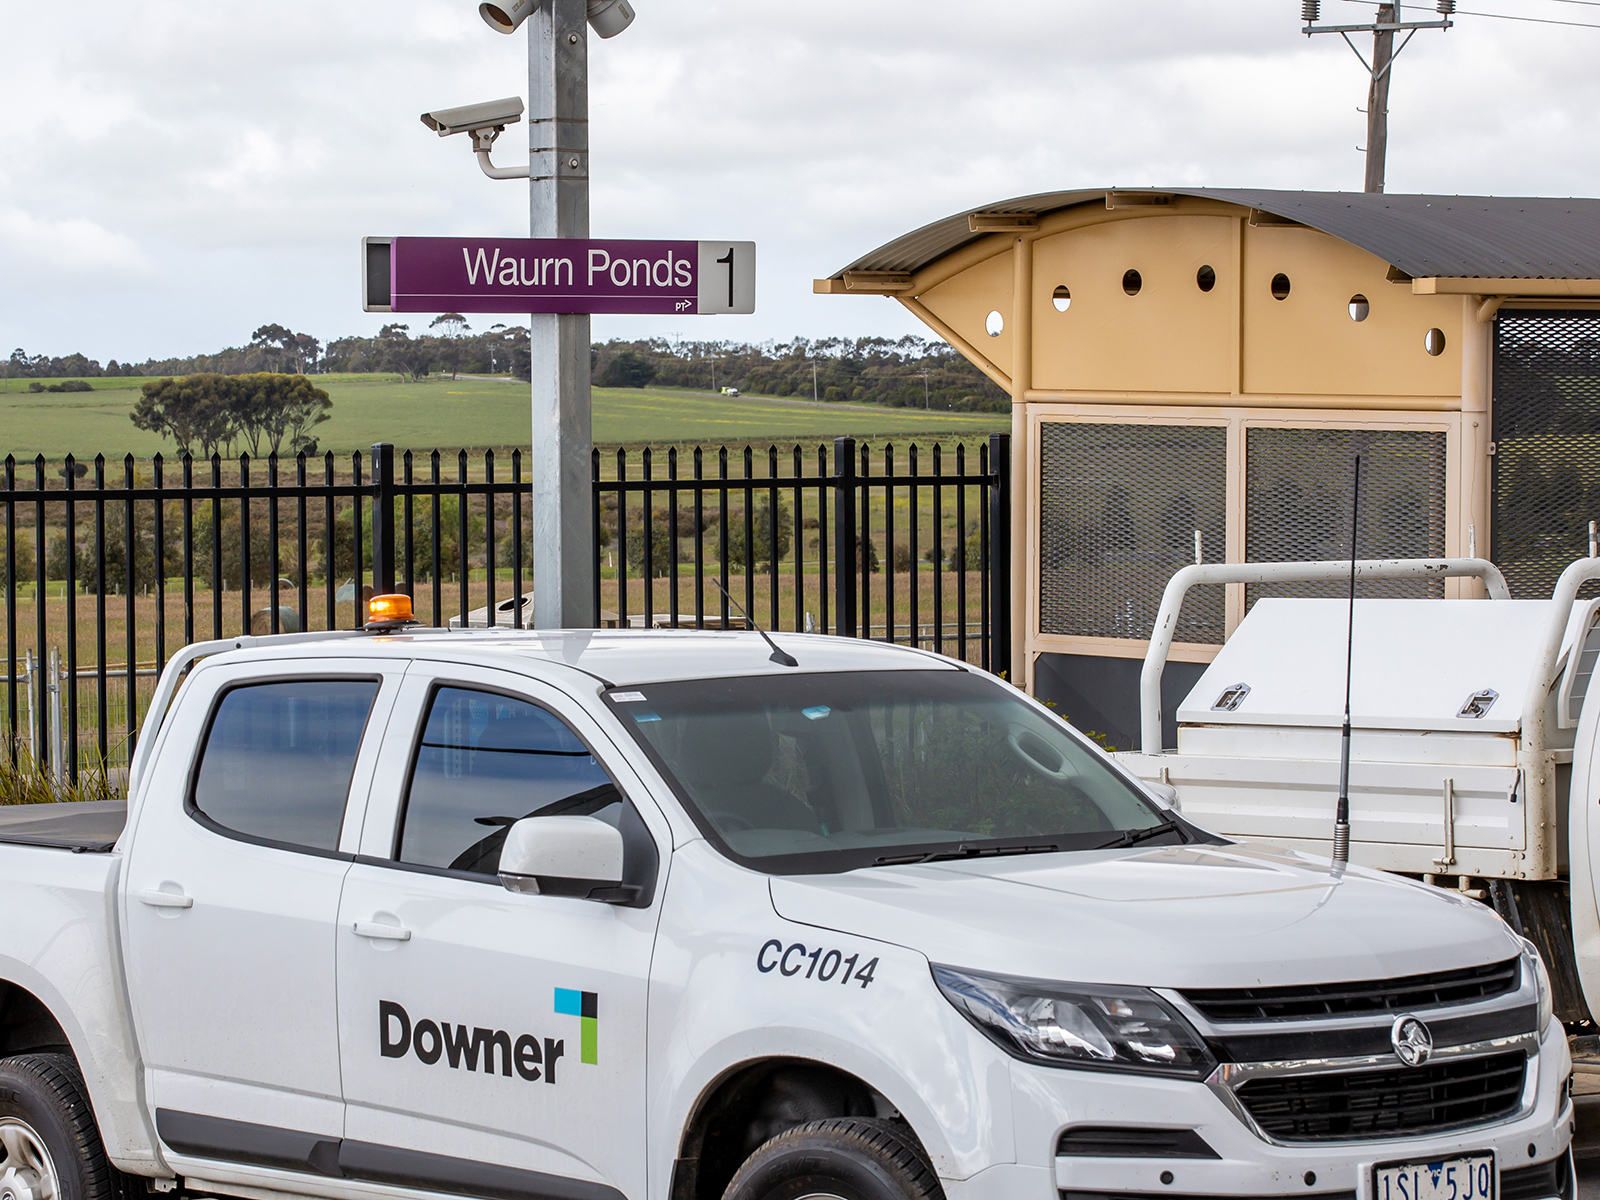 Waurn Ponds station, part of the Warrnambool Line Upgrade.